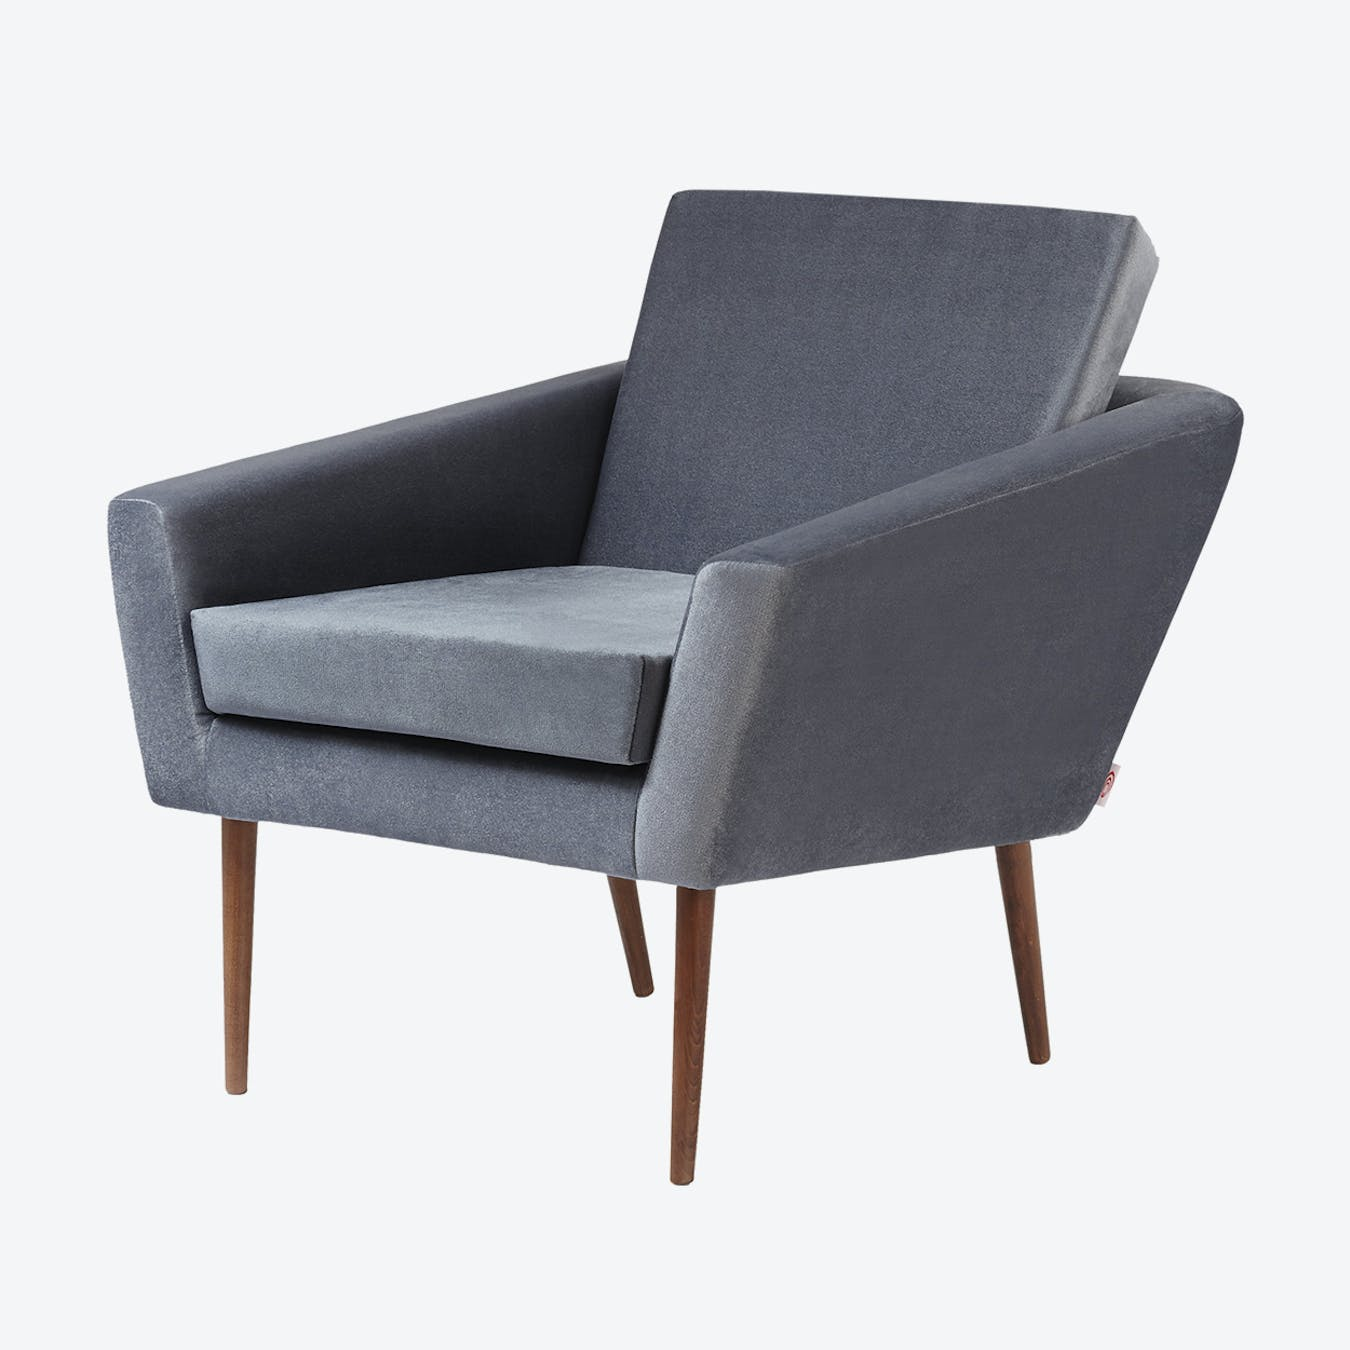 Supernova Chair - Velvet Line in Grey